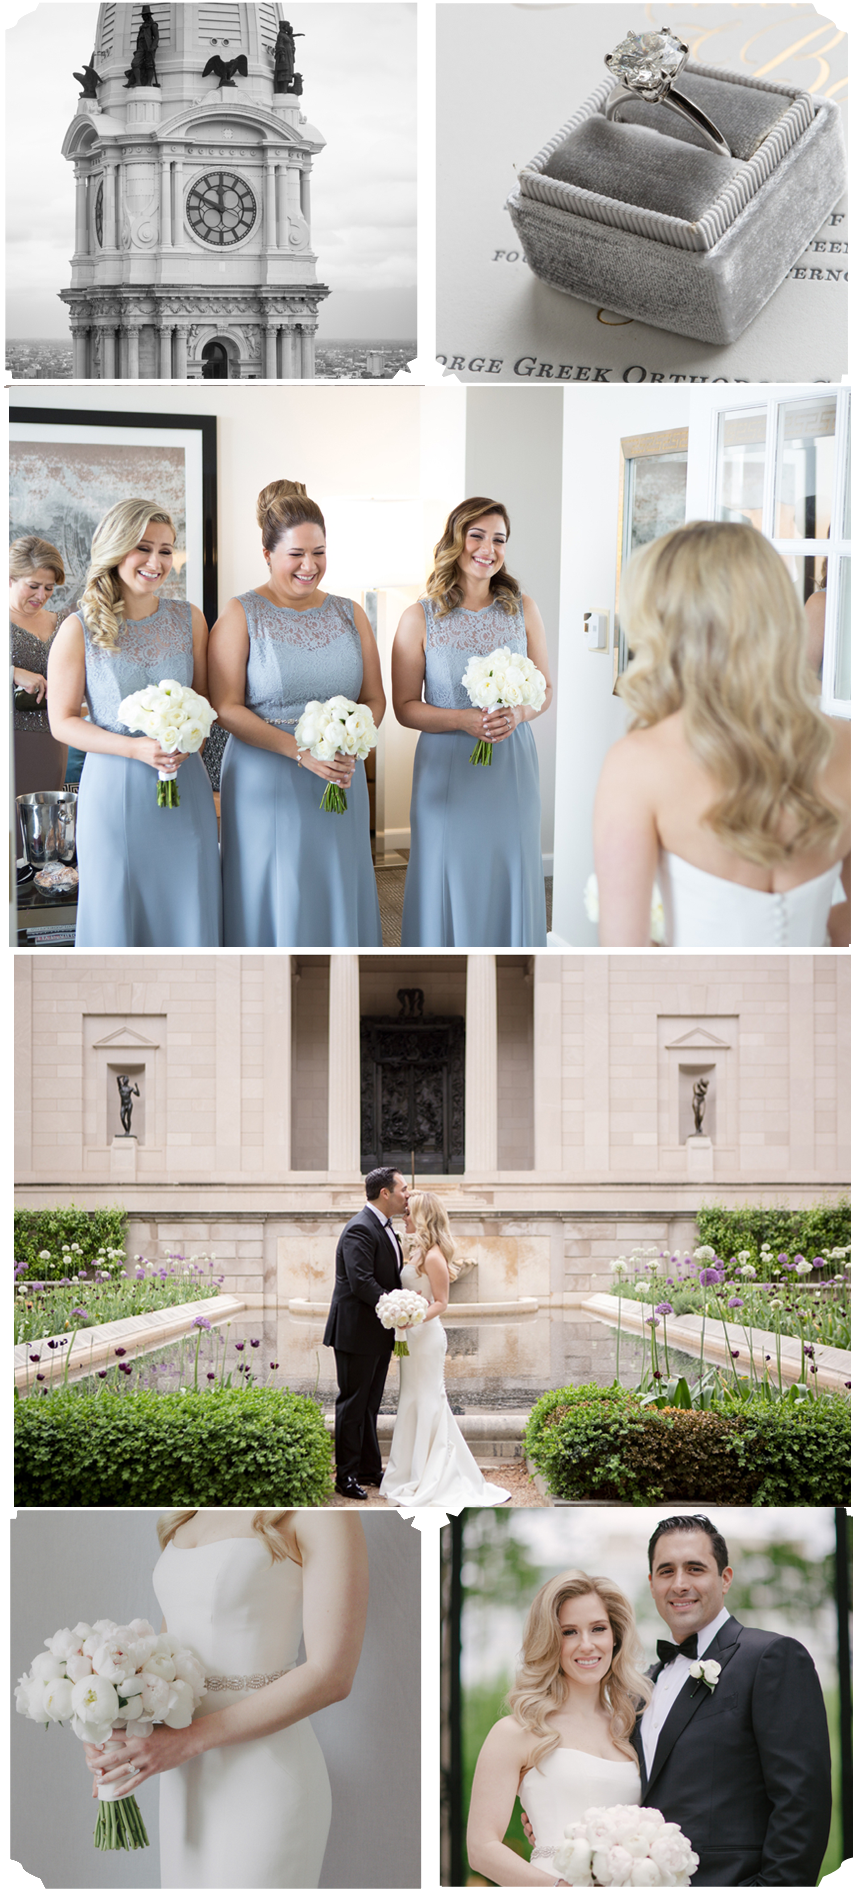 Ritz-Carlton Philadelphia Wedding Maria and Bobby